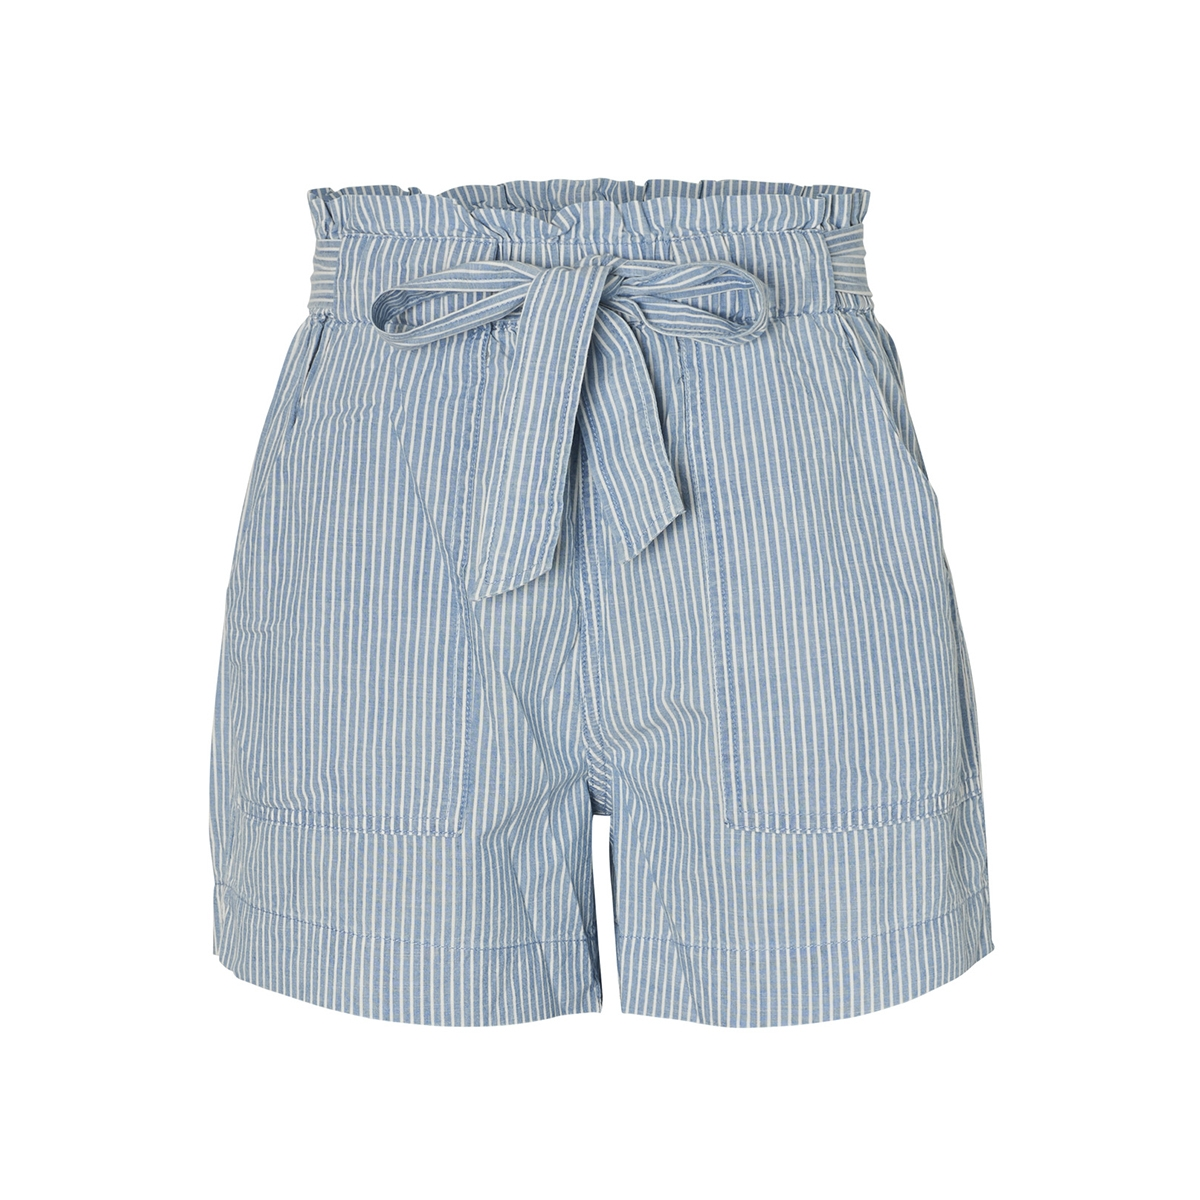 vmemily hr chambray pocket shorts g 10211707 vero moda korte broek light blue deni/white